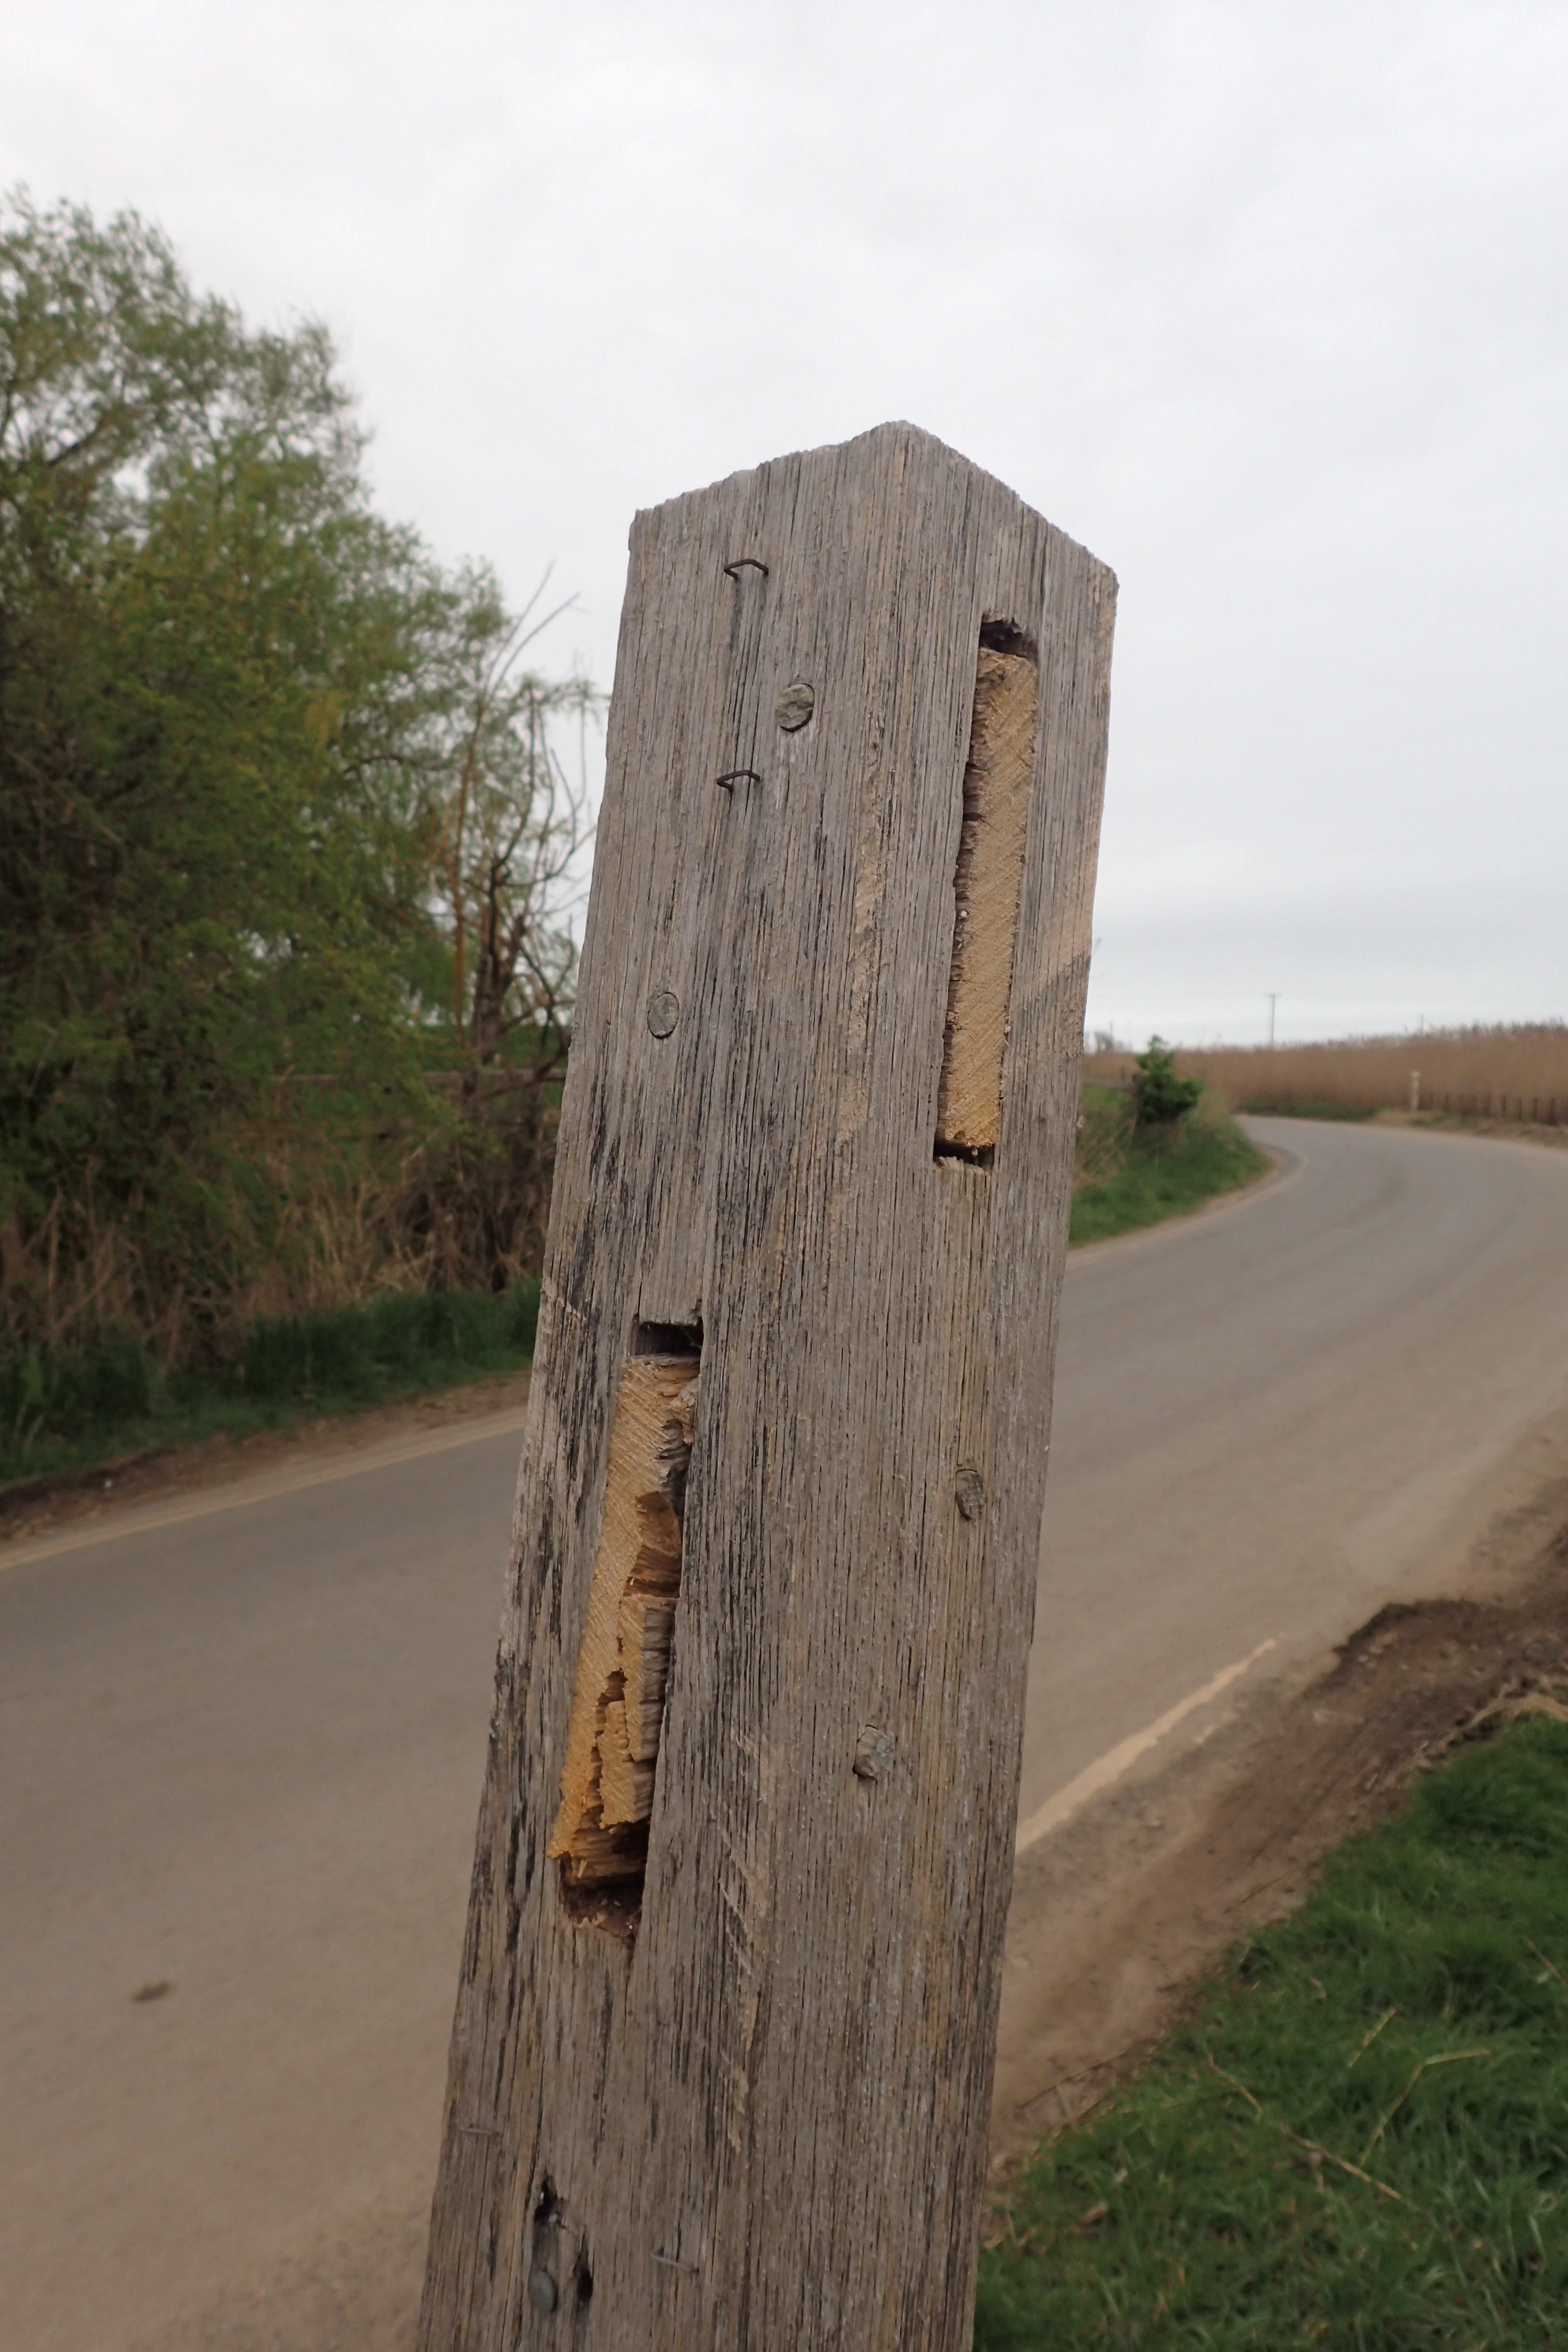 Someone had been playing silly buggers at Brancaster and had sawn off the finger posts. My own fault, I sauntered straight on and needlessly walked a mile and a half out to the point and back